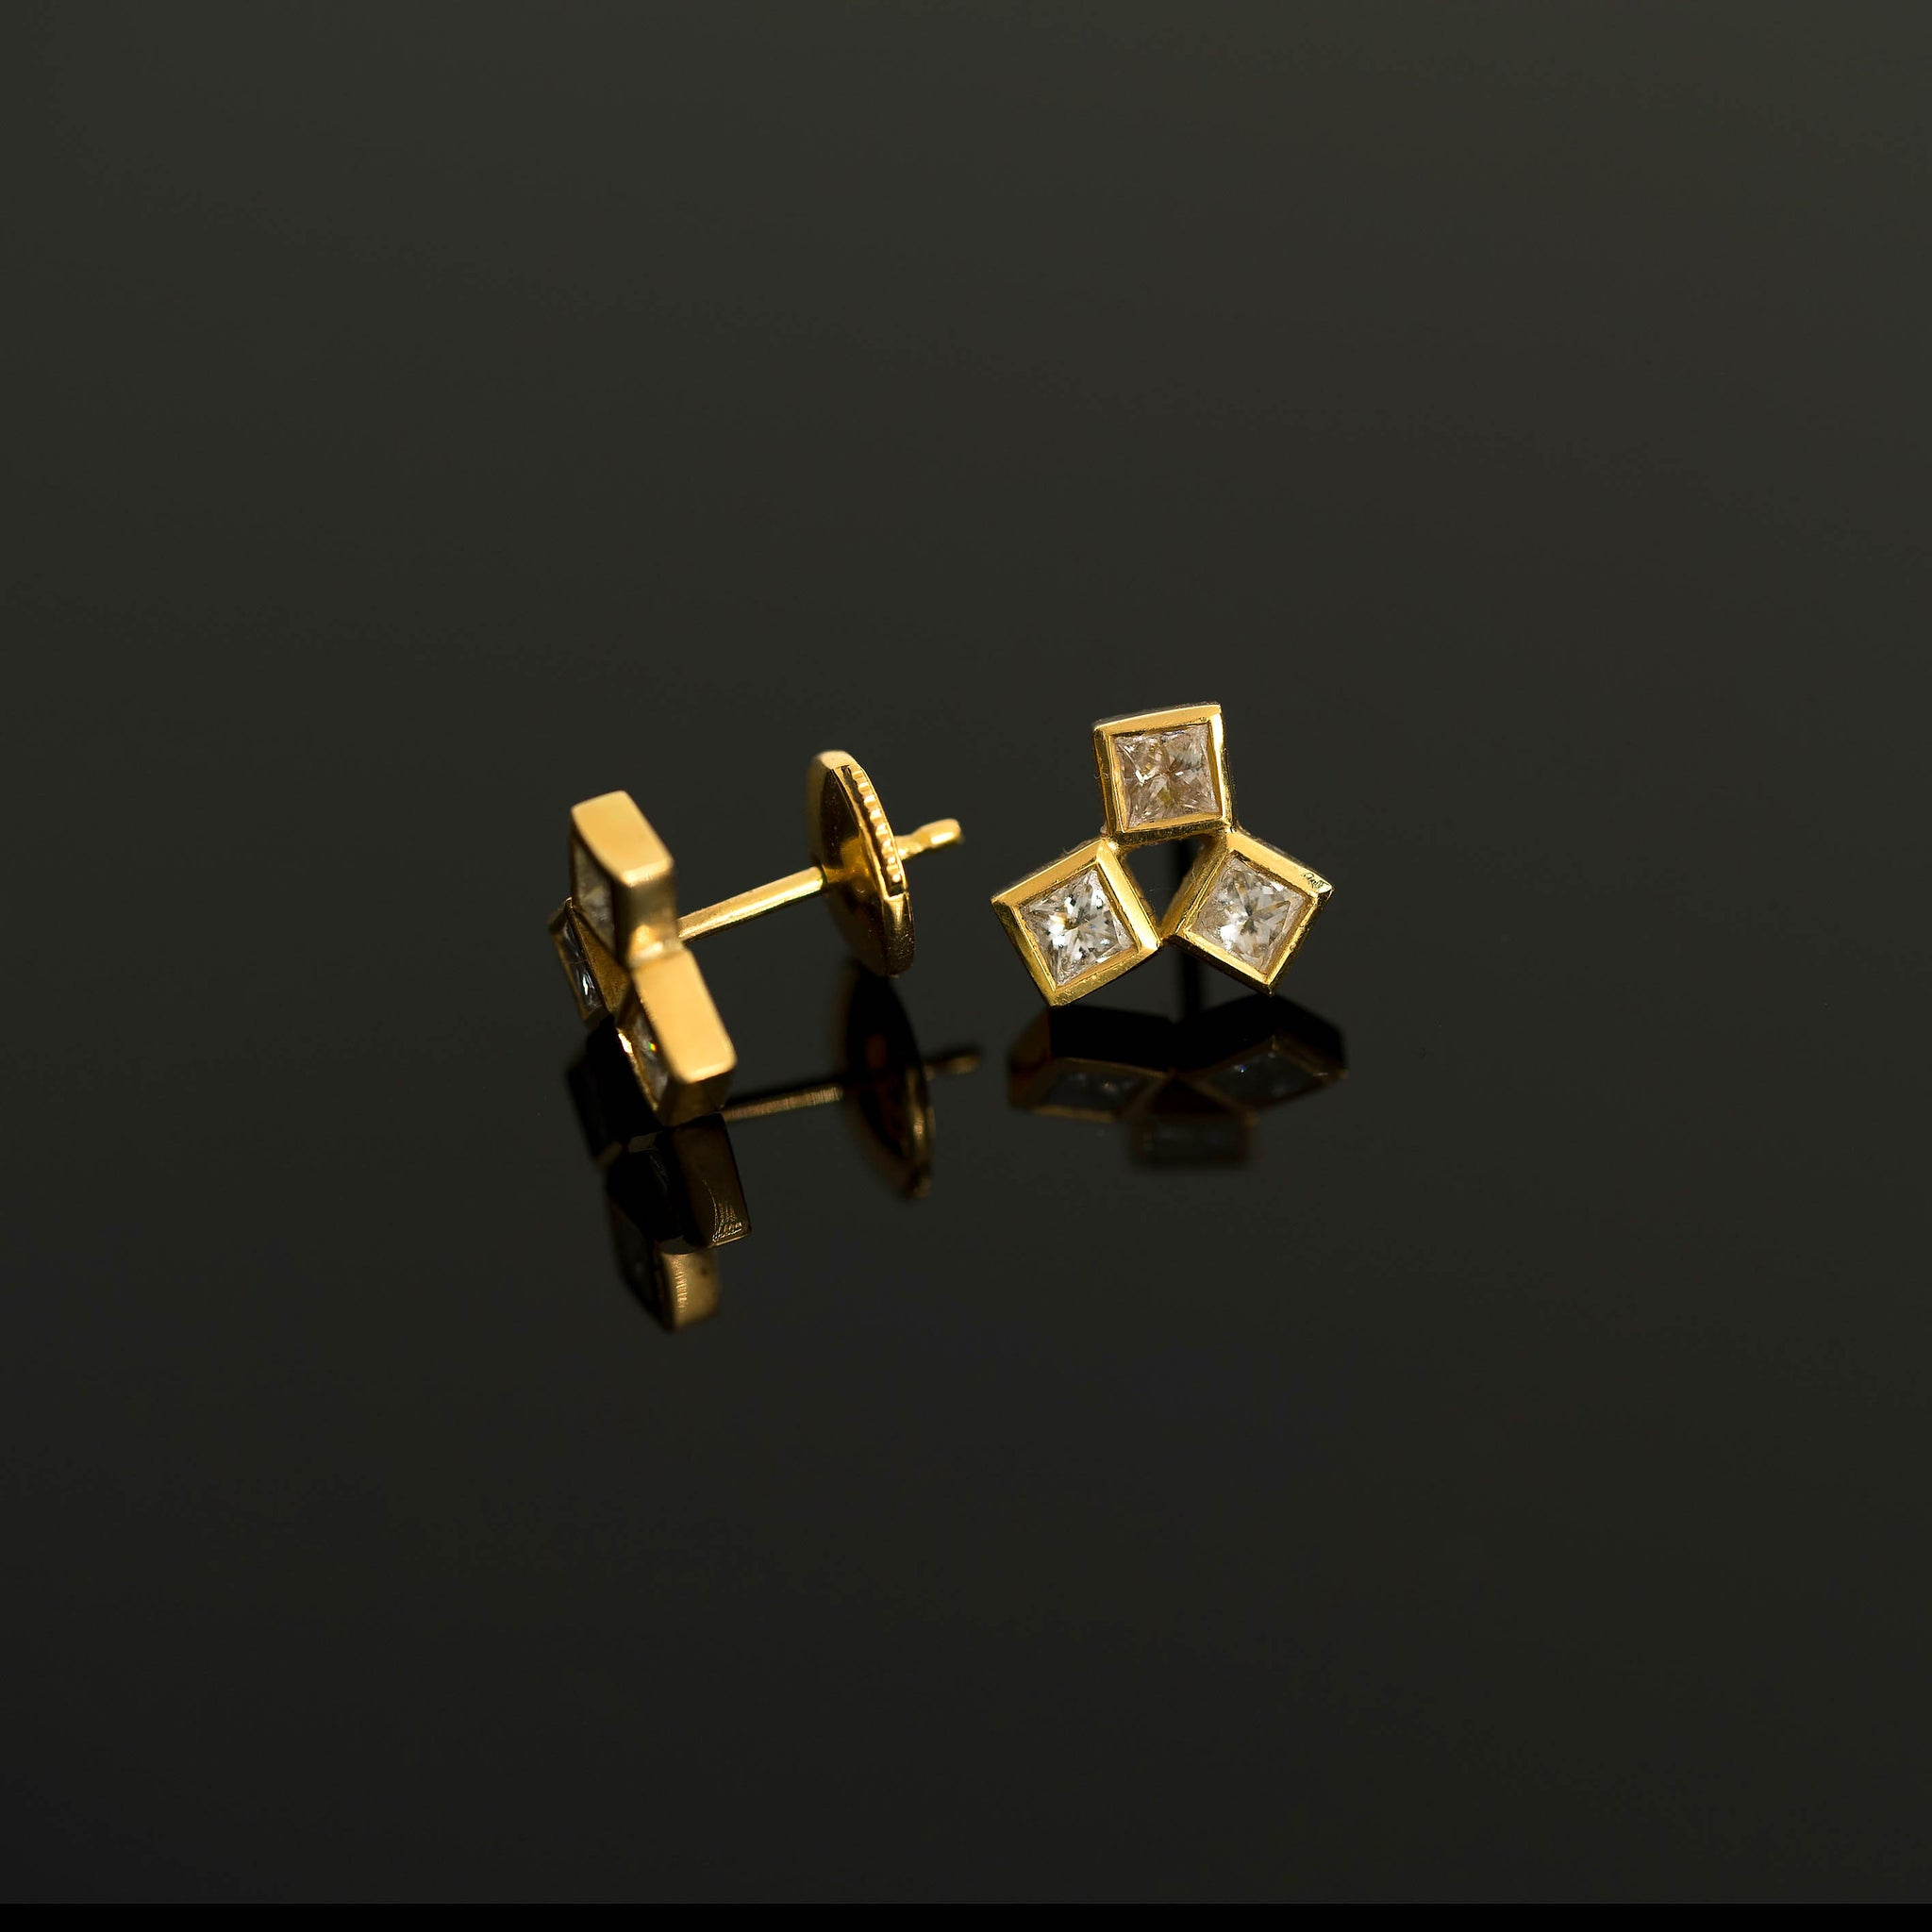 18k Gold VS 3 Princess Diamond Cluster Earrings